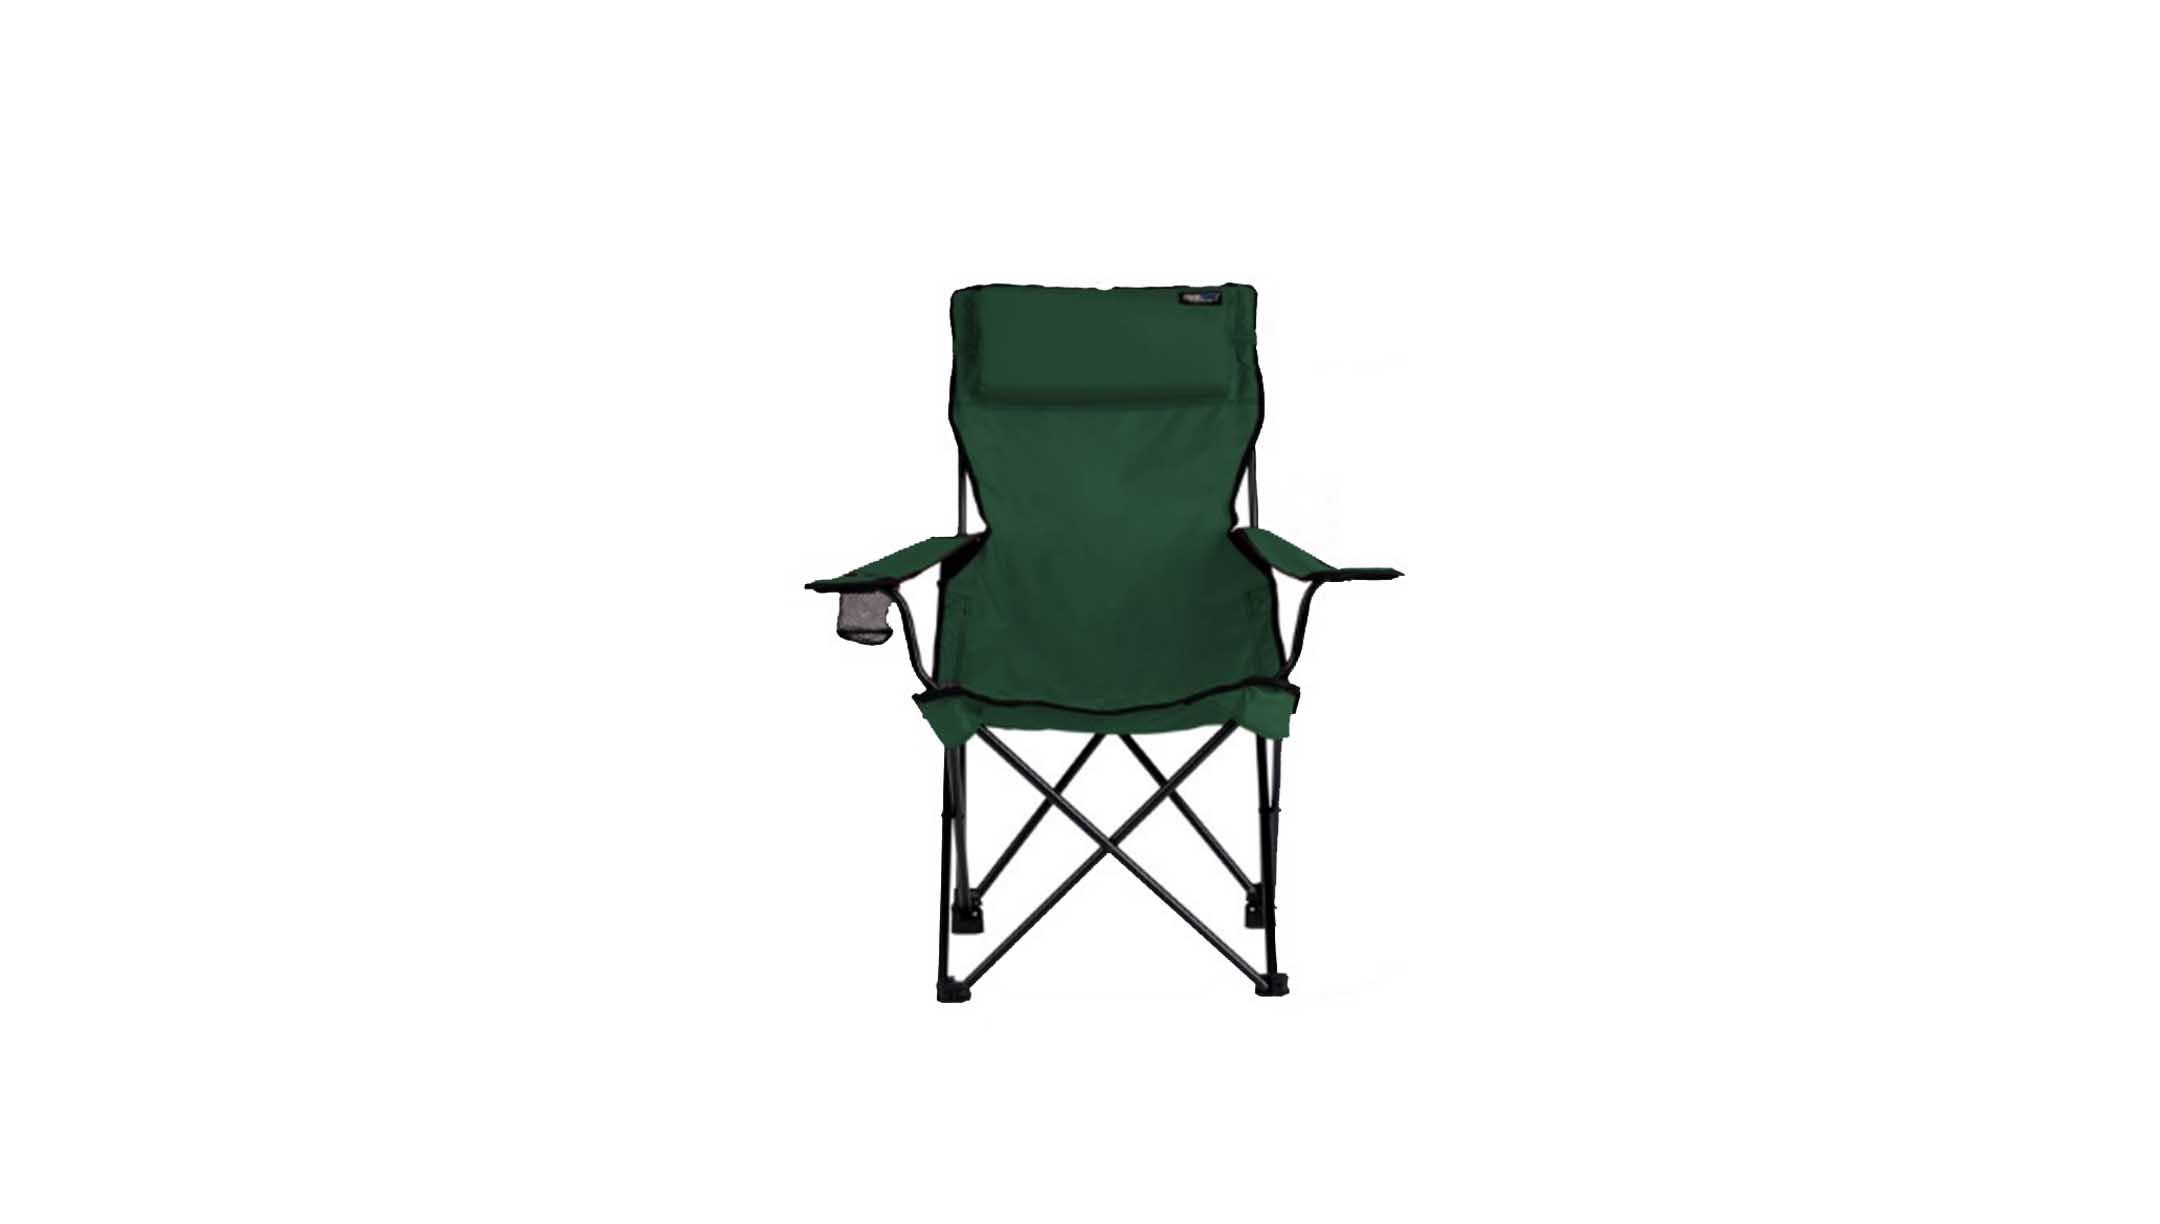 TravelChair Classic Bubba Chair for $29.99 at Sierra Trading Post  sc 1 st  The Best Deals Club & 4-Person 3 Season Kelty Acadia 4 Tent for $99.99 at Sierra Trading ...